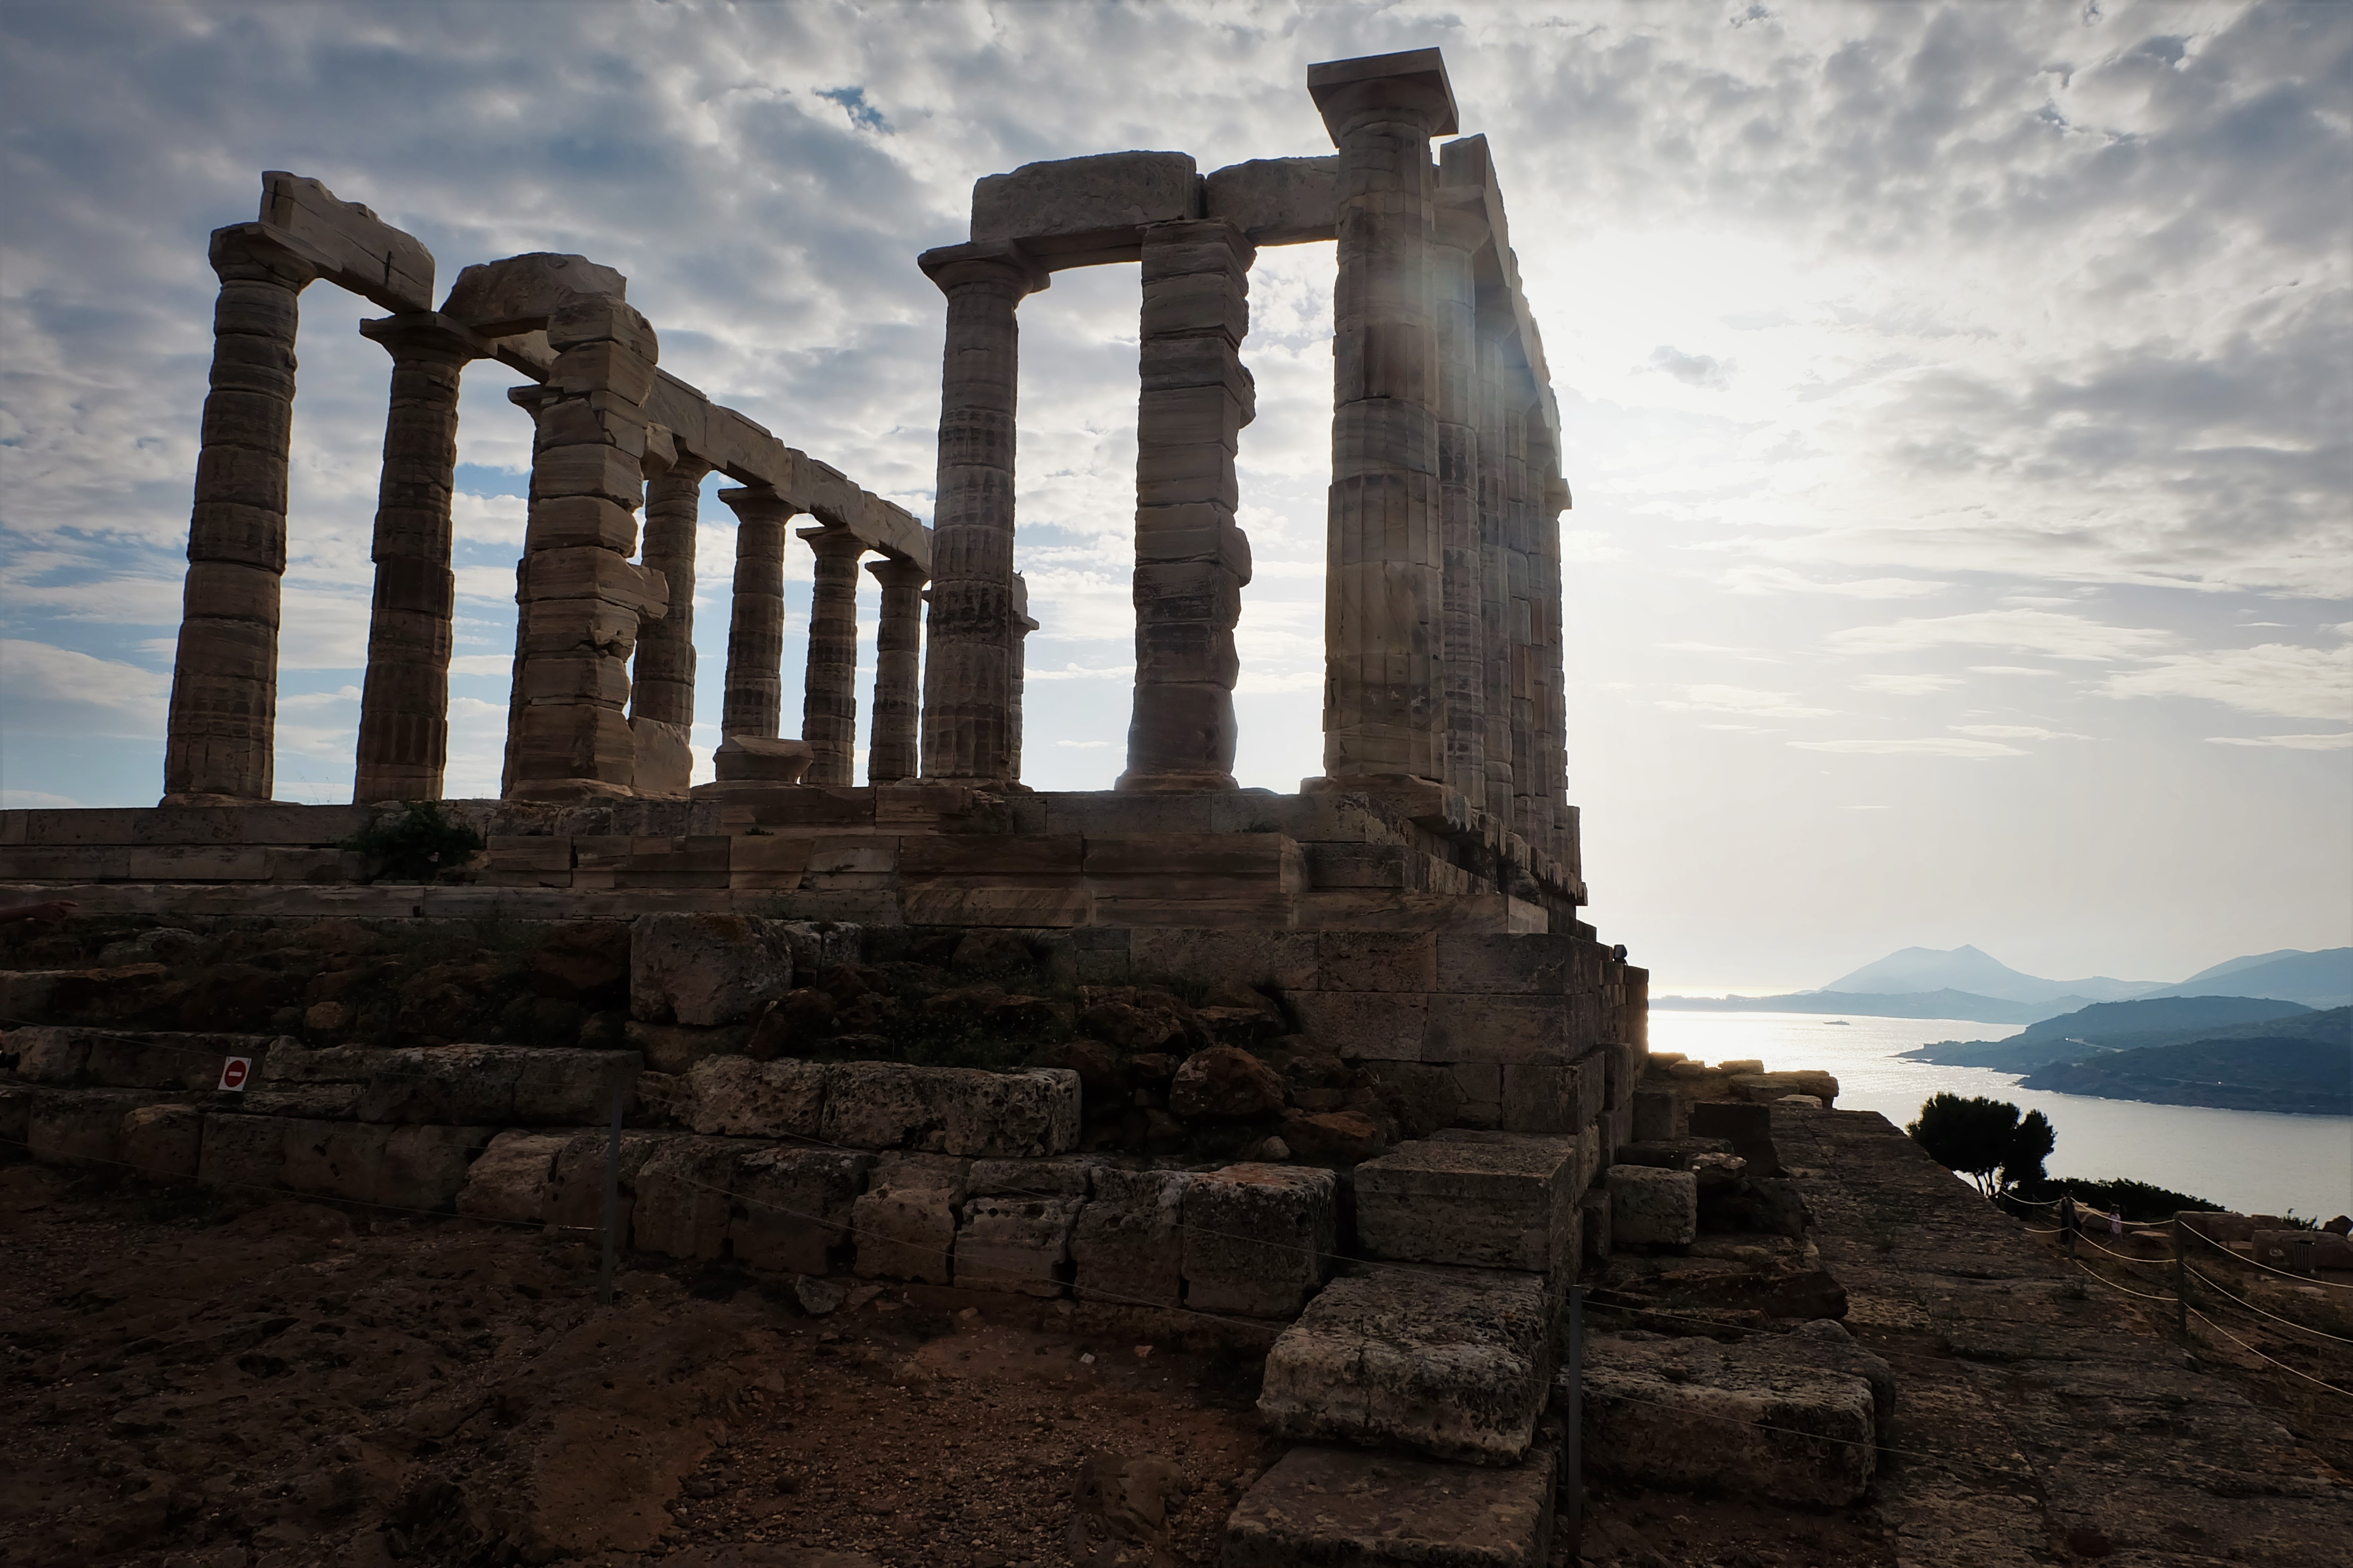 Carry It Like Harry - Watch the sun sets on the Temple of Poseidon at Cape Sounion, Greece